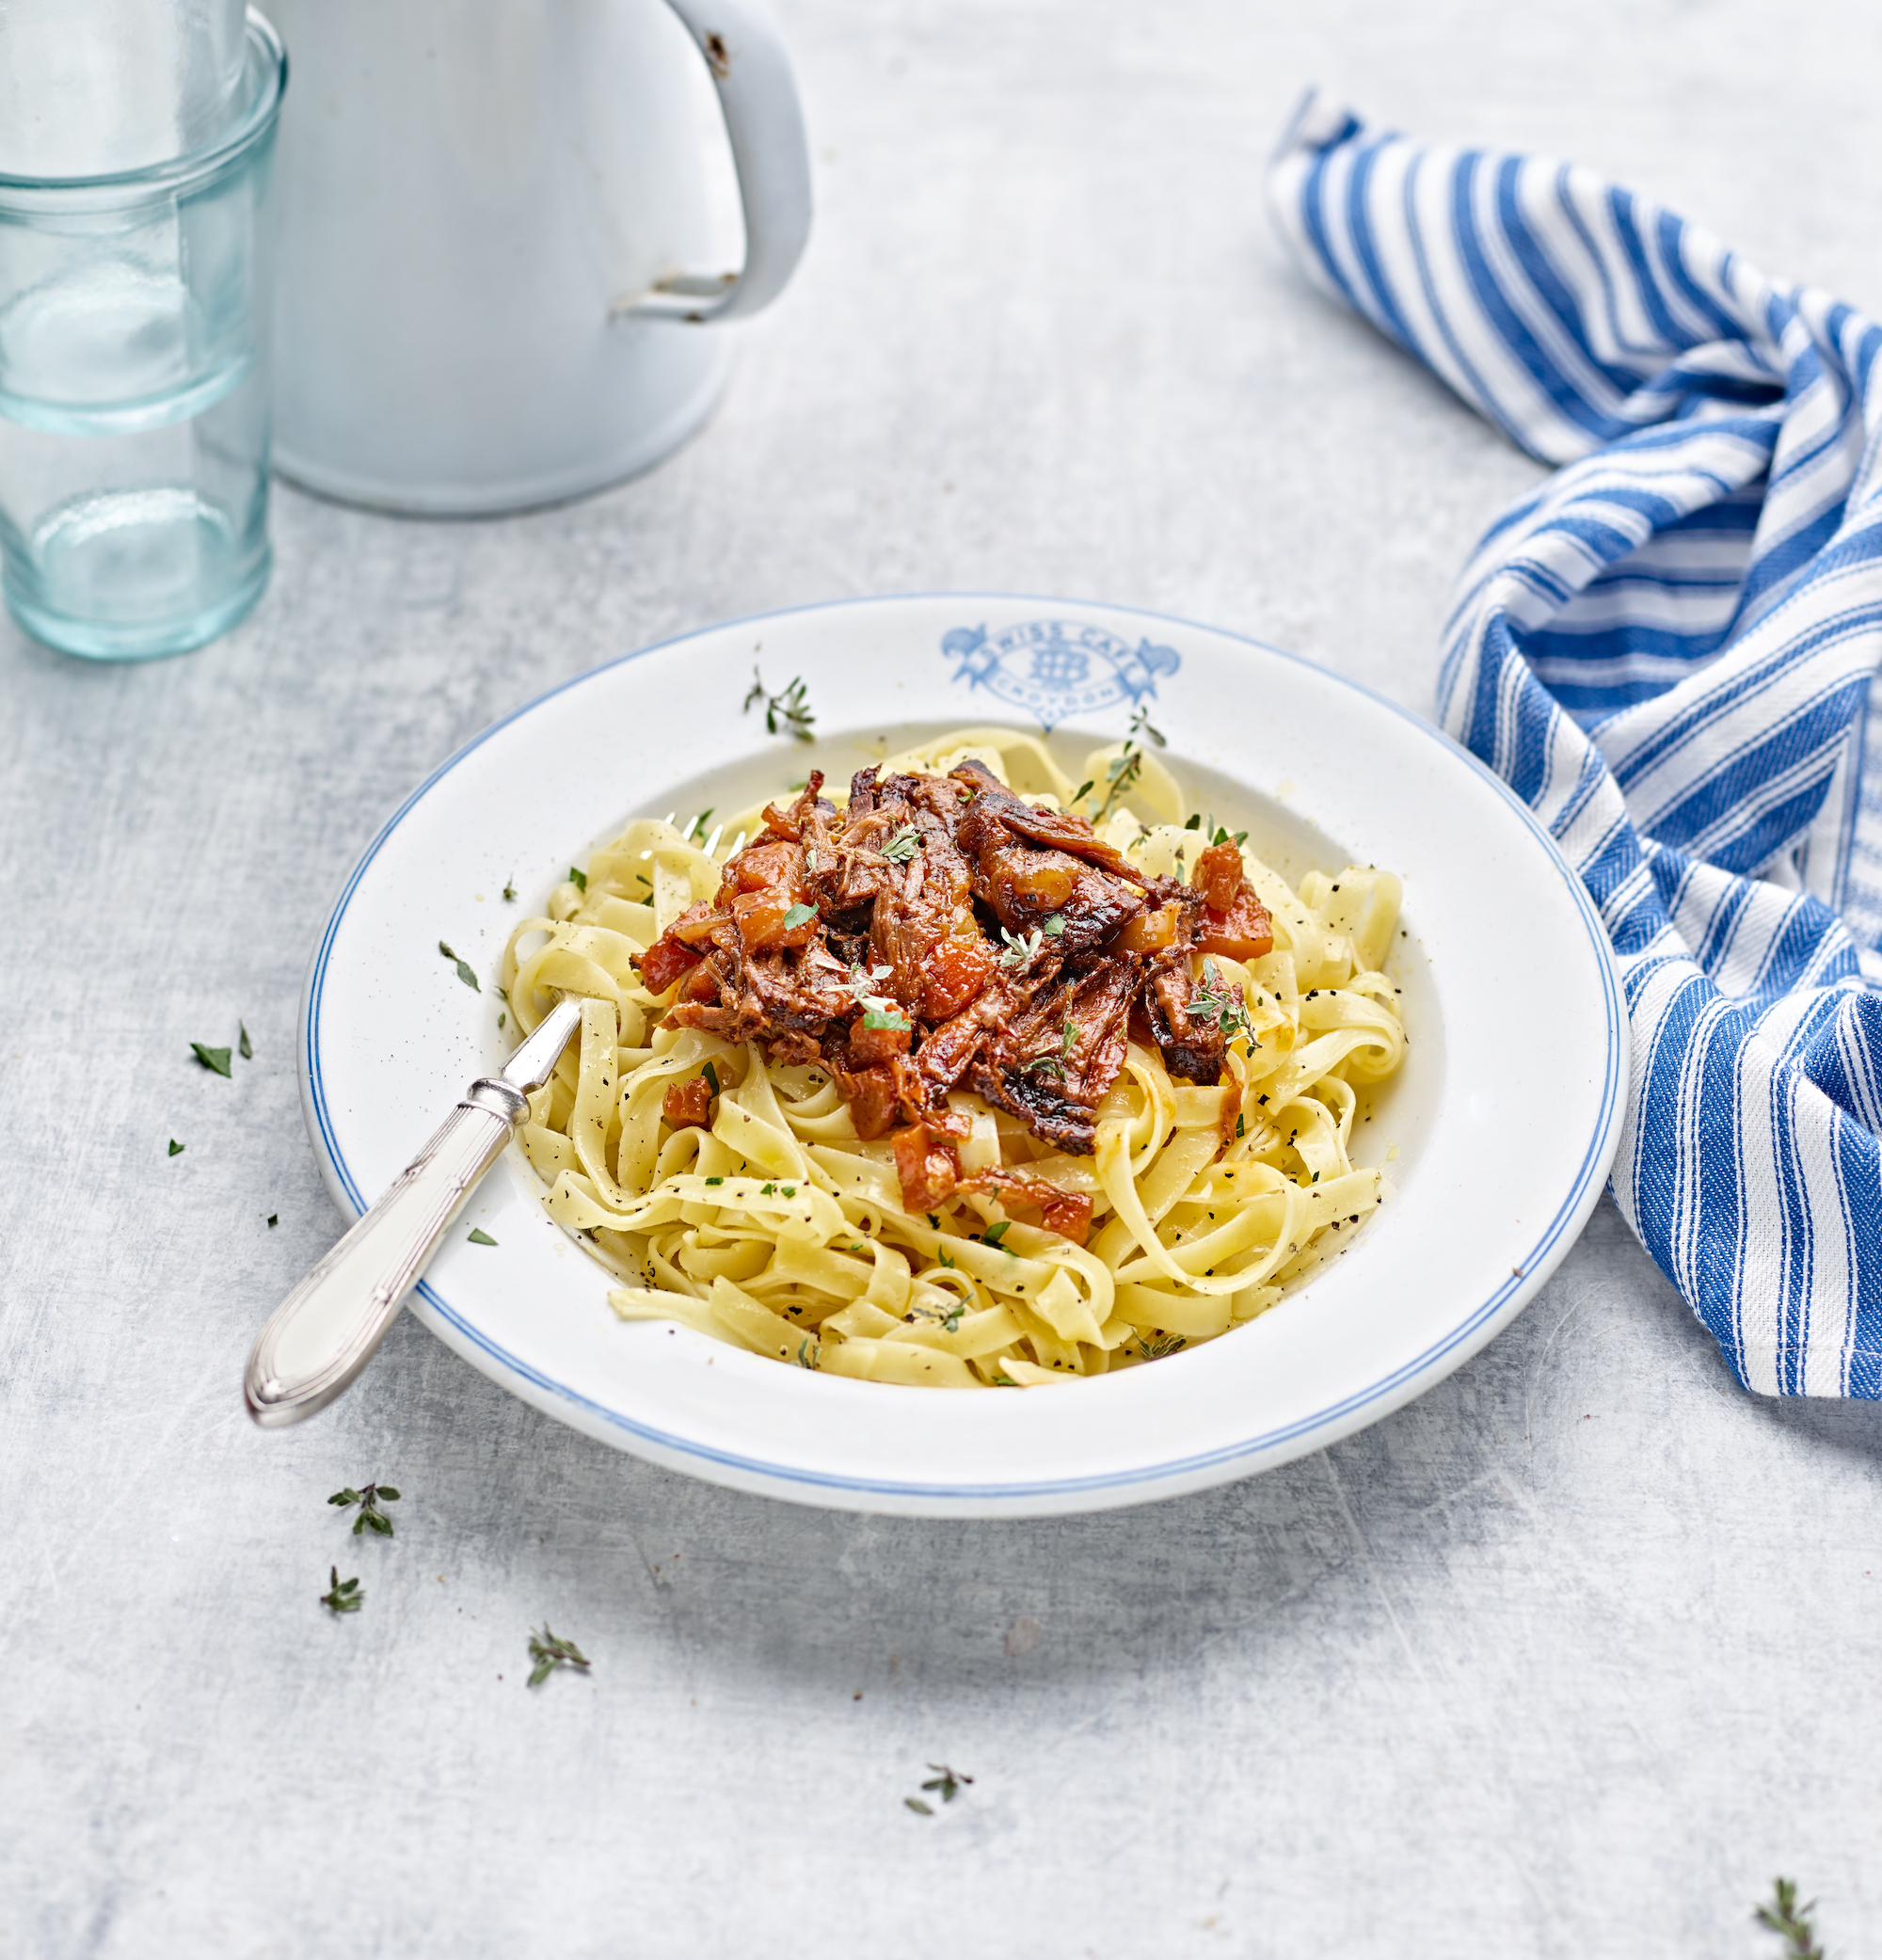 Rich Short Rib Ragu with Tagliatelle